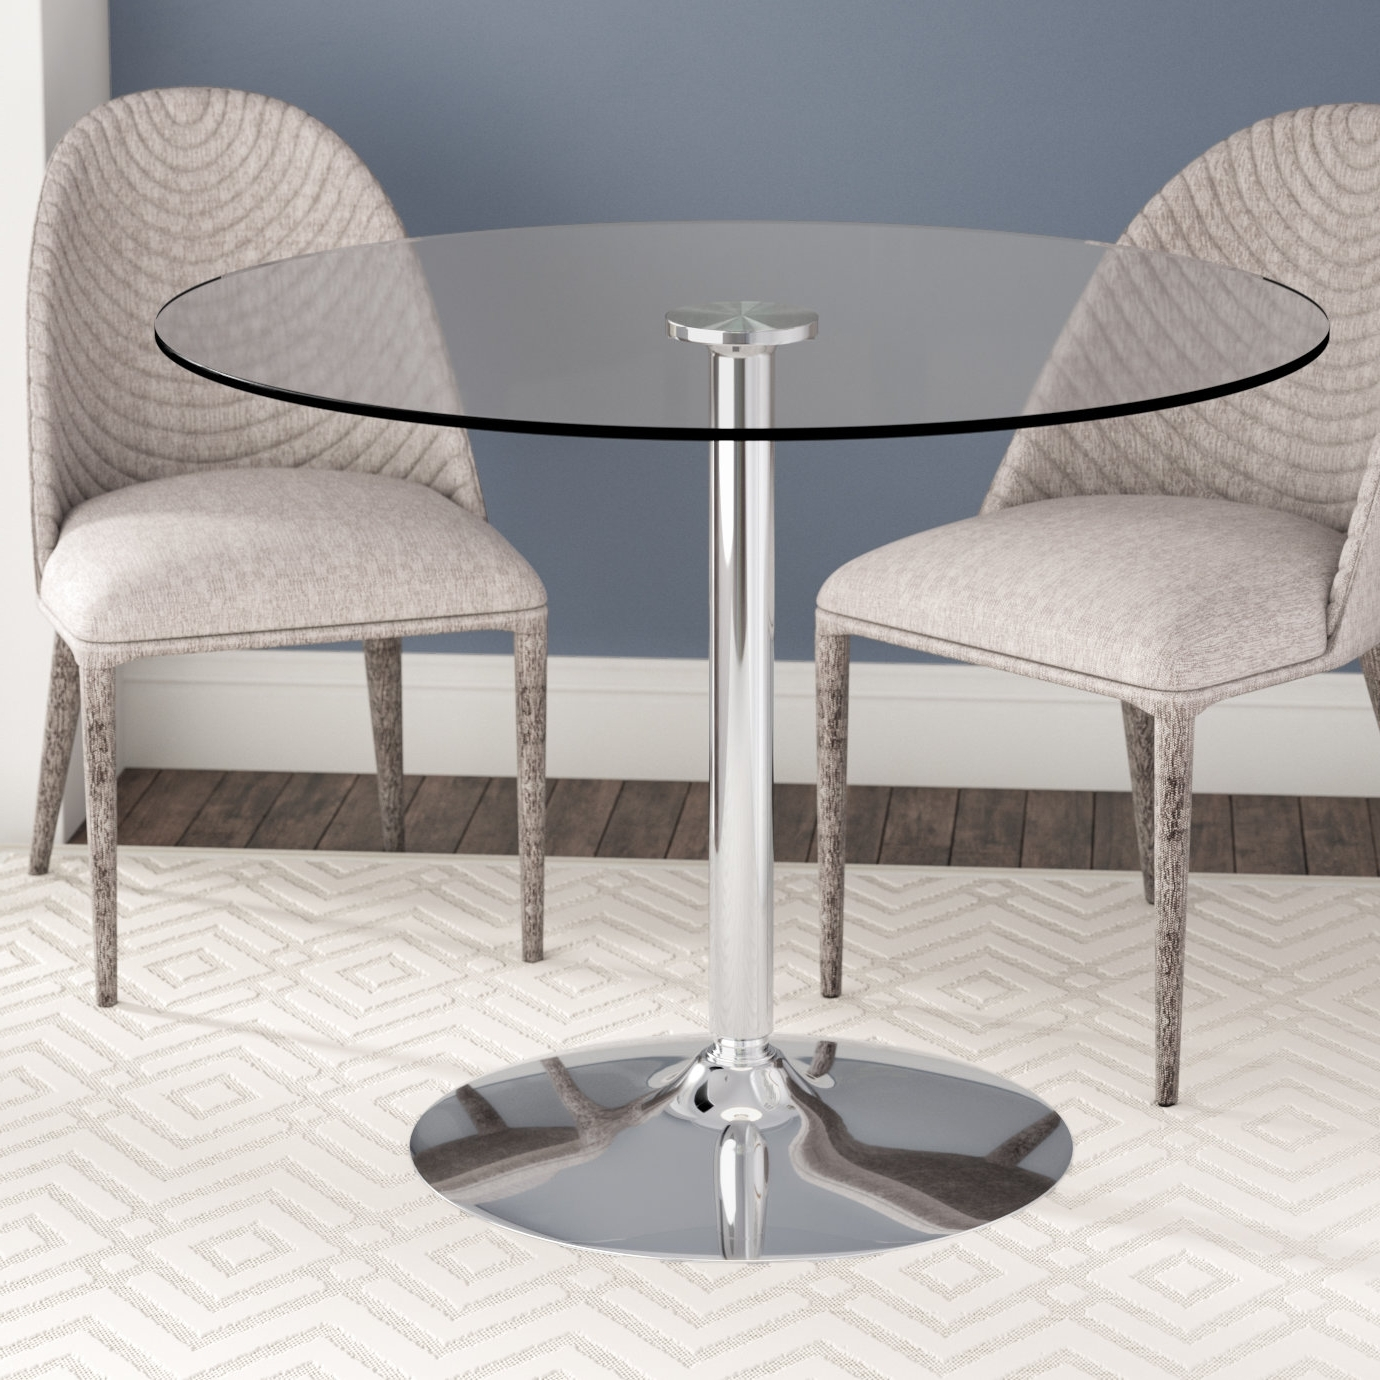 Wayfair With Regard To Most Current Glass Dining Tables (View 23 of 25)